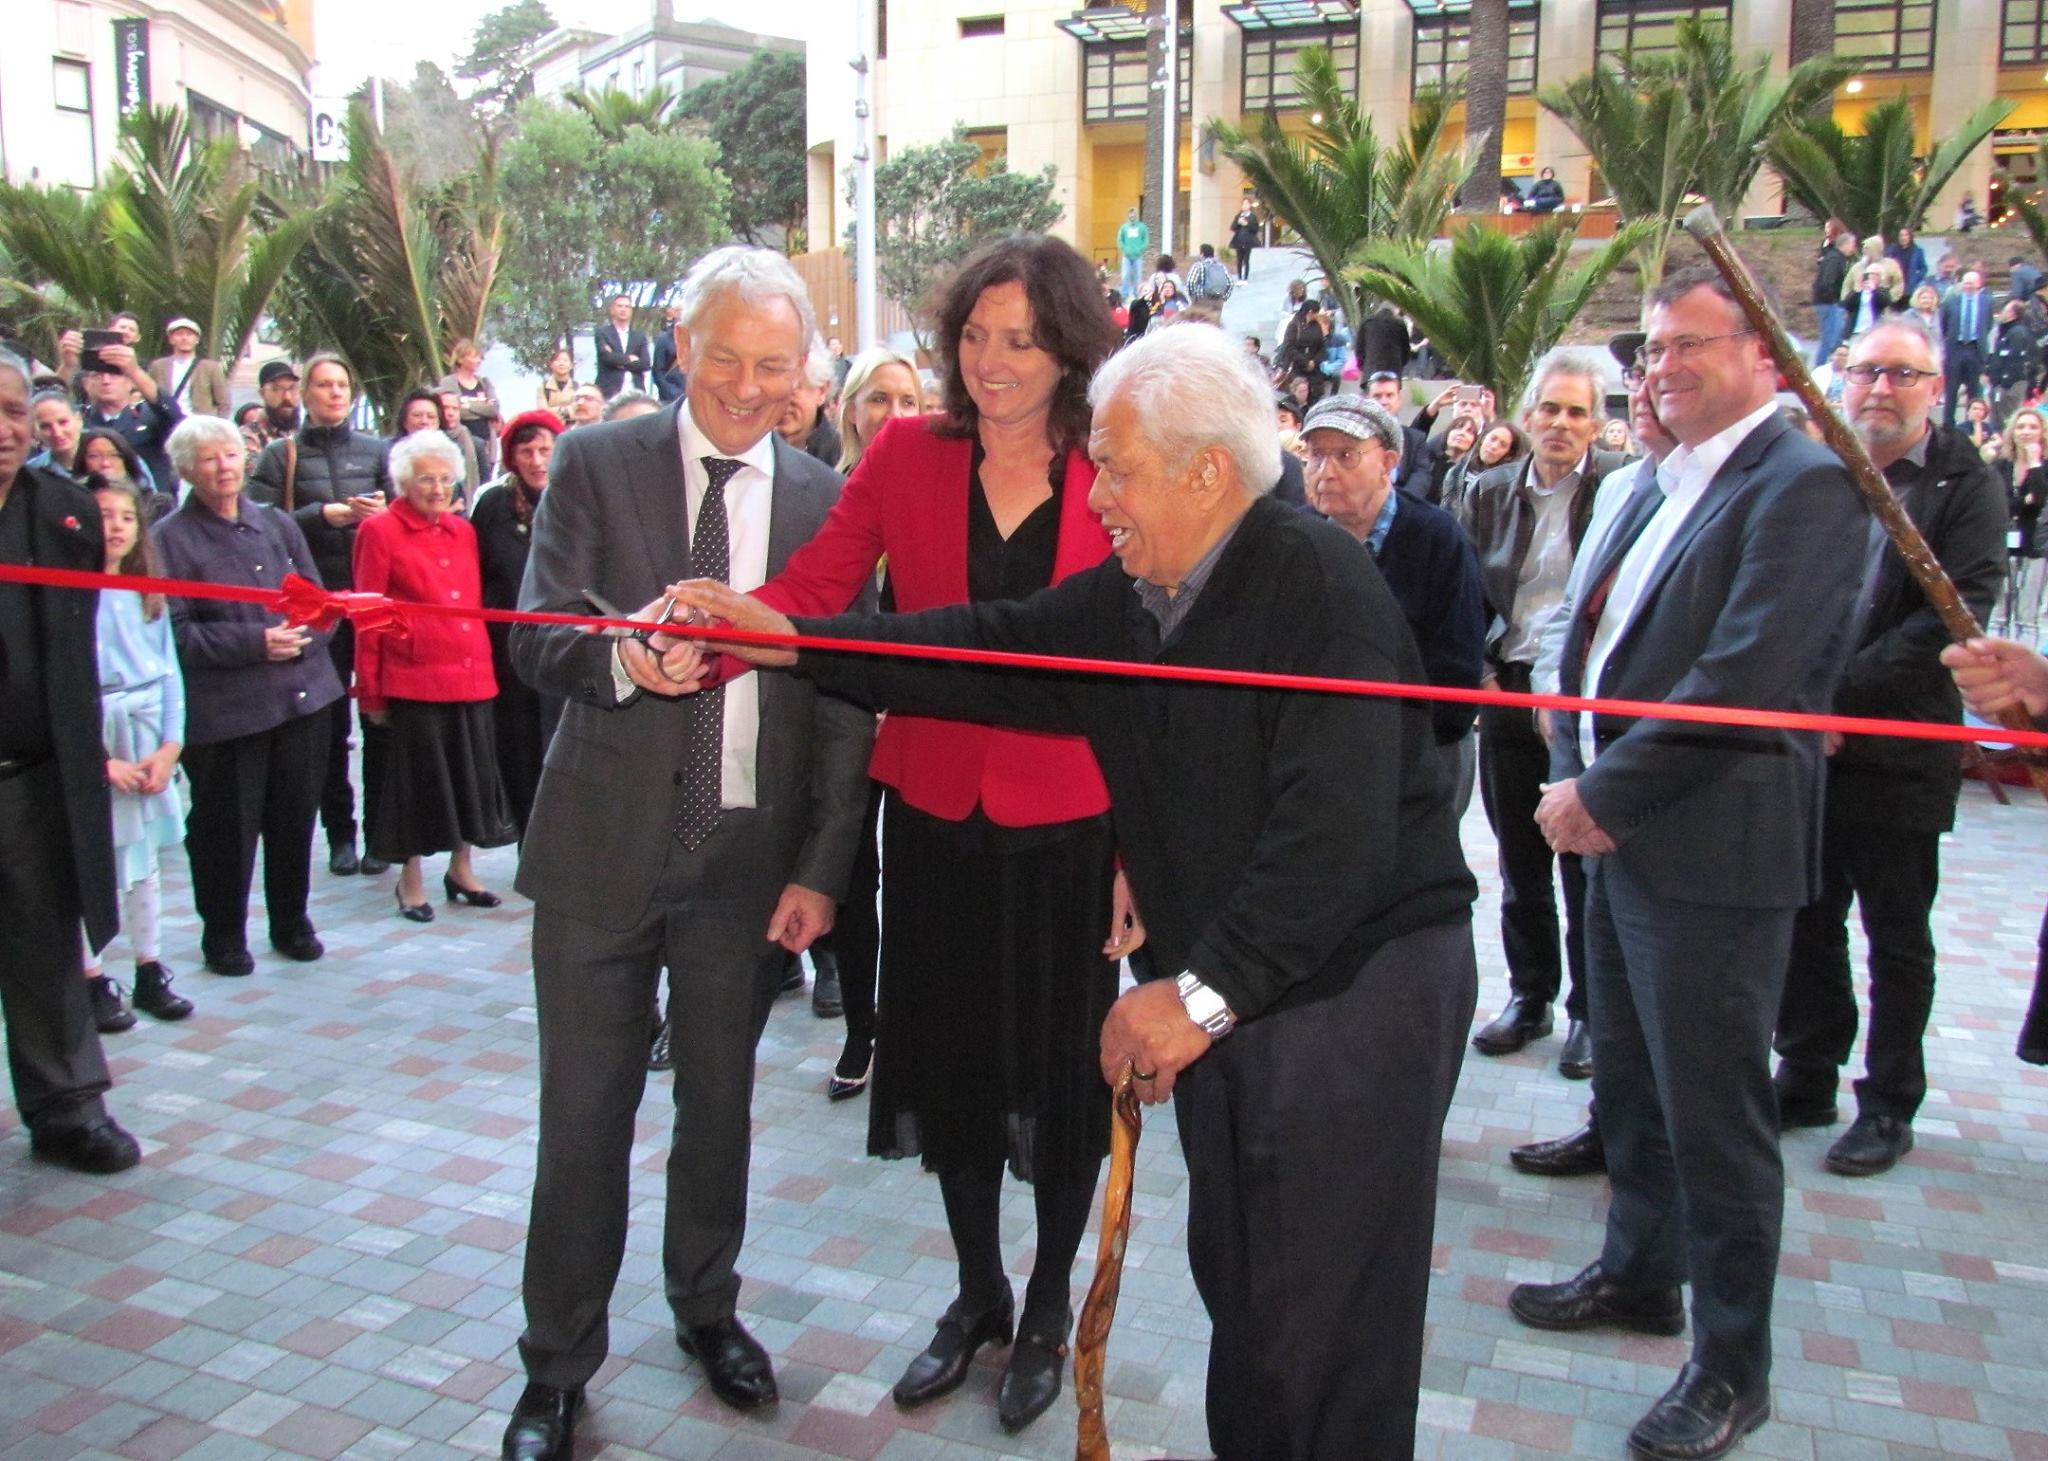 Opening of Ellen Melville Centre and Freyberg Place